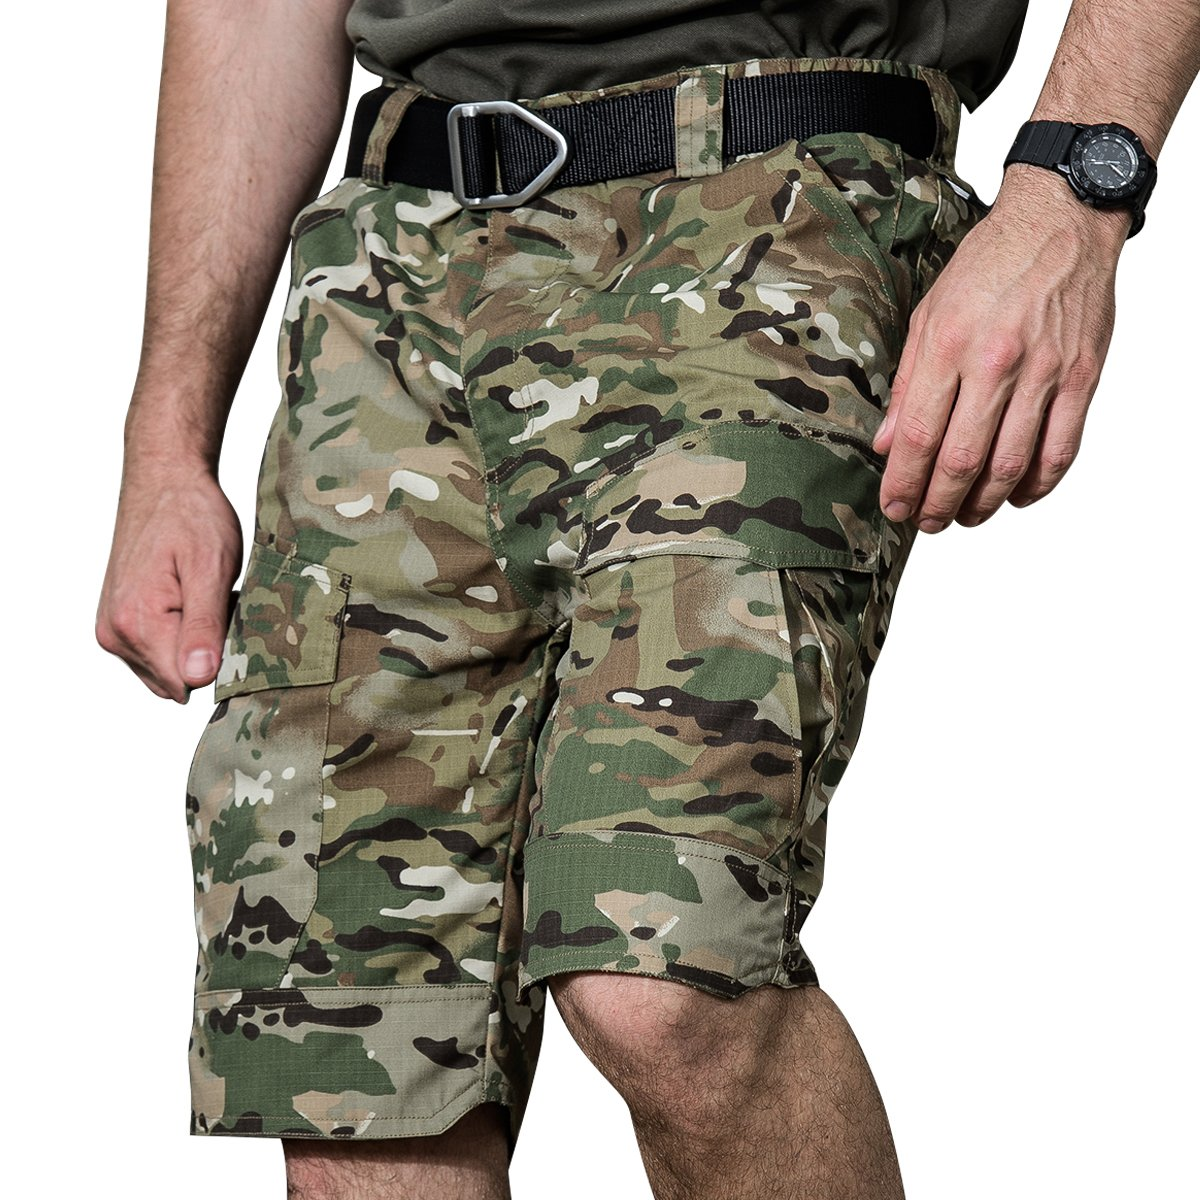 Mens Cargo Shorts Tactical Outdoor Work Hiking Military Army Construction Casual Waterproof Wear Multiple Pocket Loose Slim Fit Sports Mountain Fishing Baggy Running Farm Workout Pants (32, Camo)